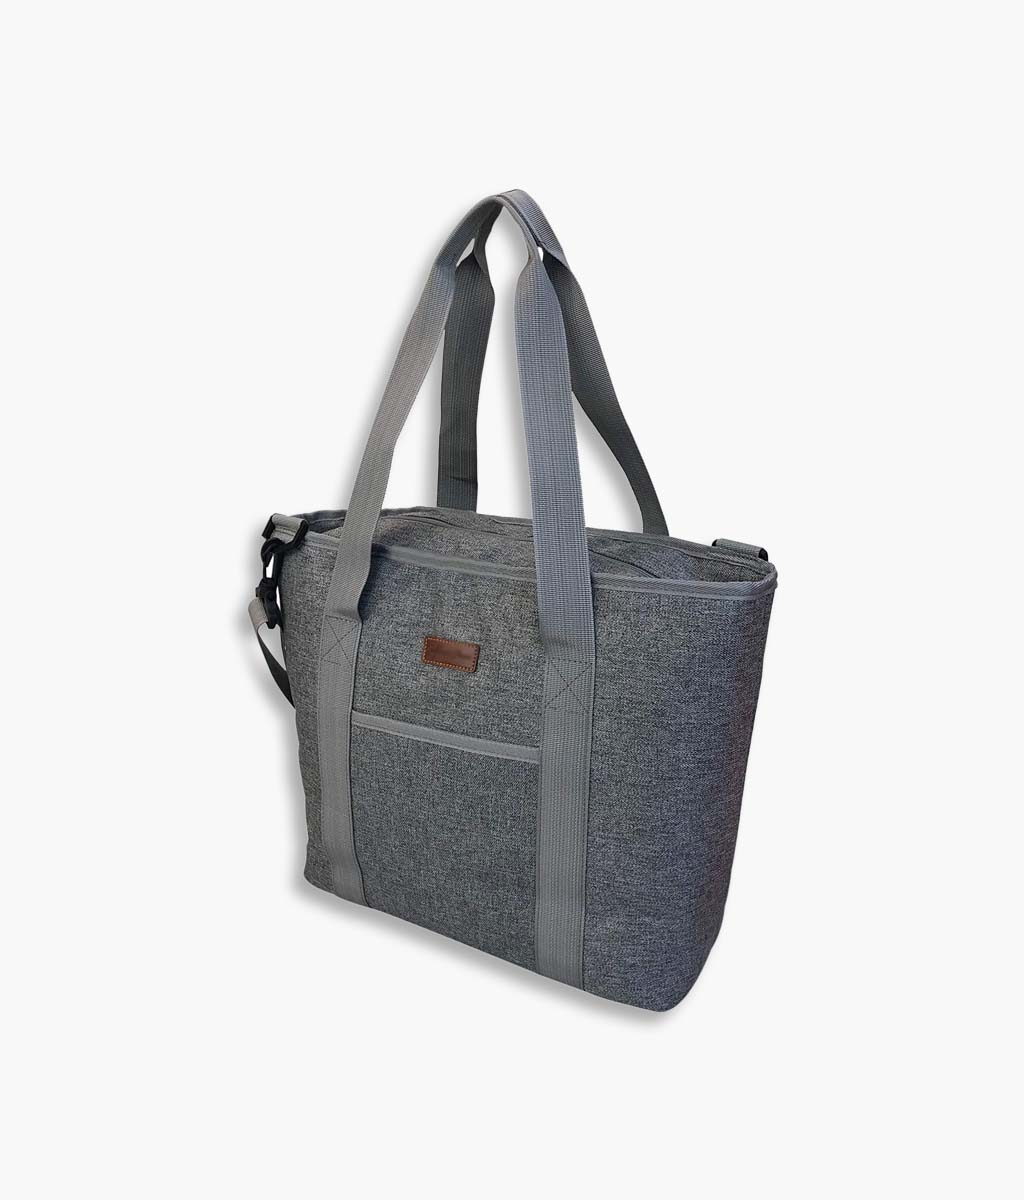 Collapsible Cooler Tote Bag Carrier